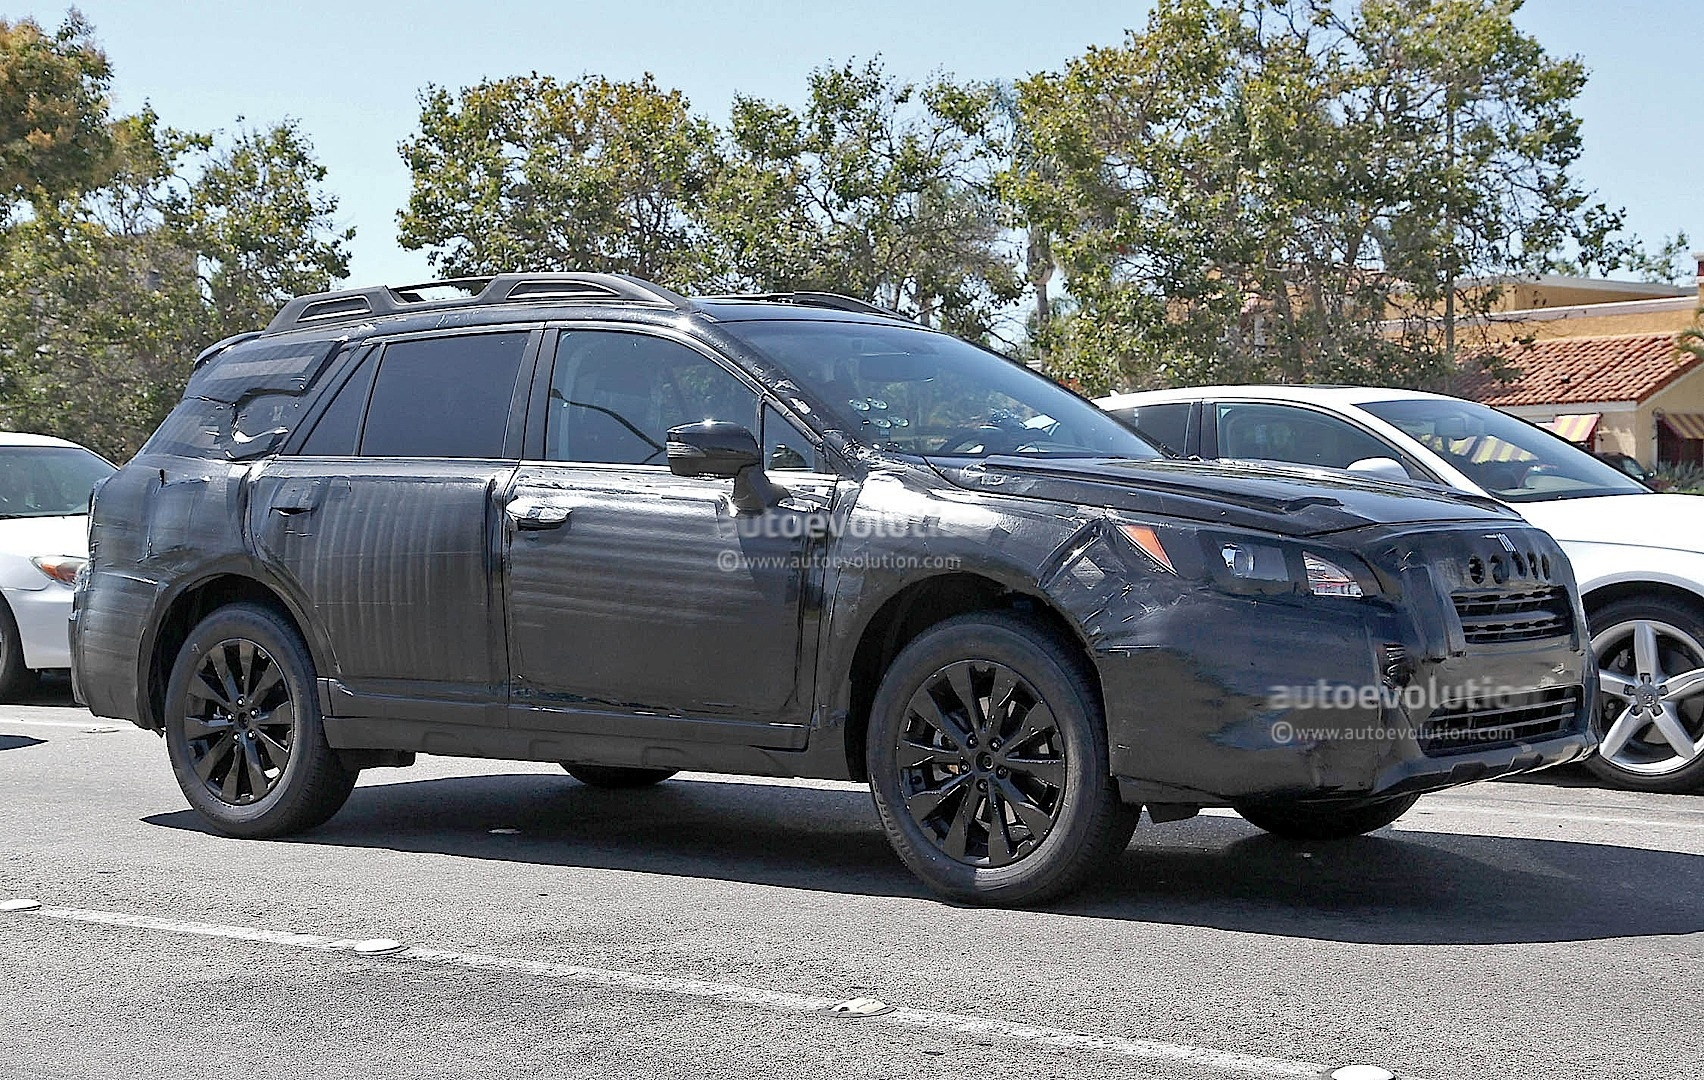 Subaru Outback 2015 Colors | Release Date, Price and Specs